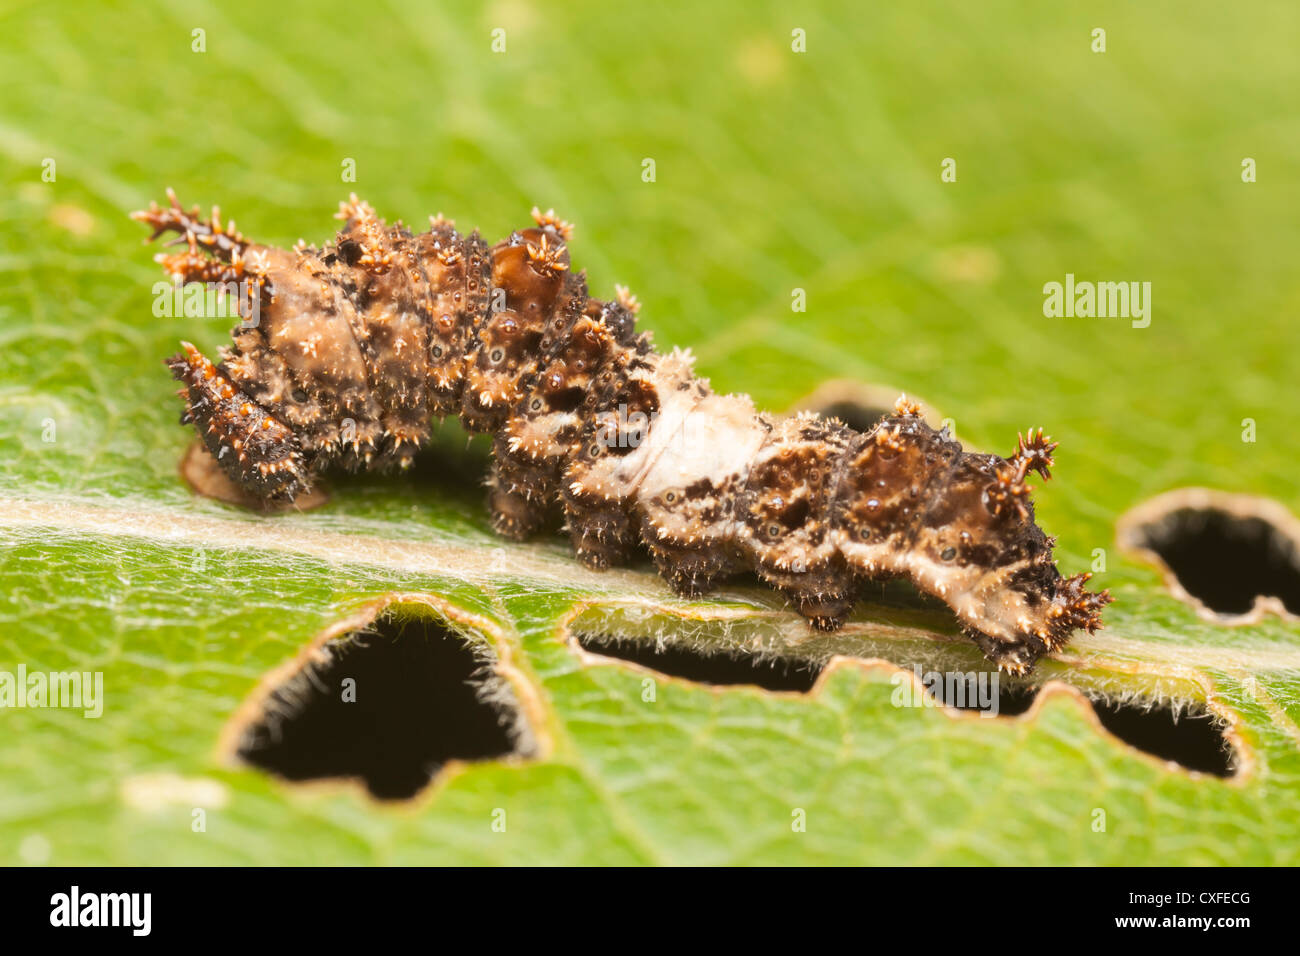 A Viceroy Butterfly (Limenitis archippus)  caterpillar (larva), which mimics a bird dropping, feeding on a Cottonwood - Stock Image